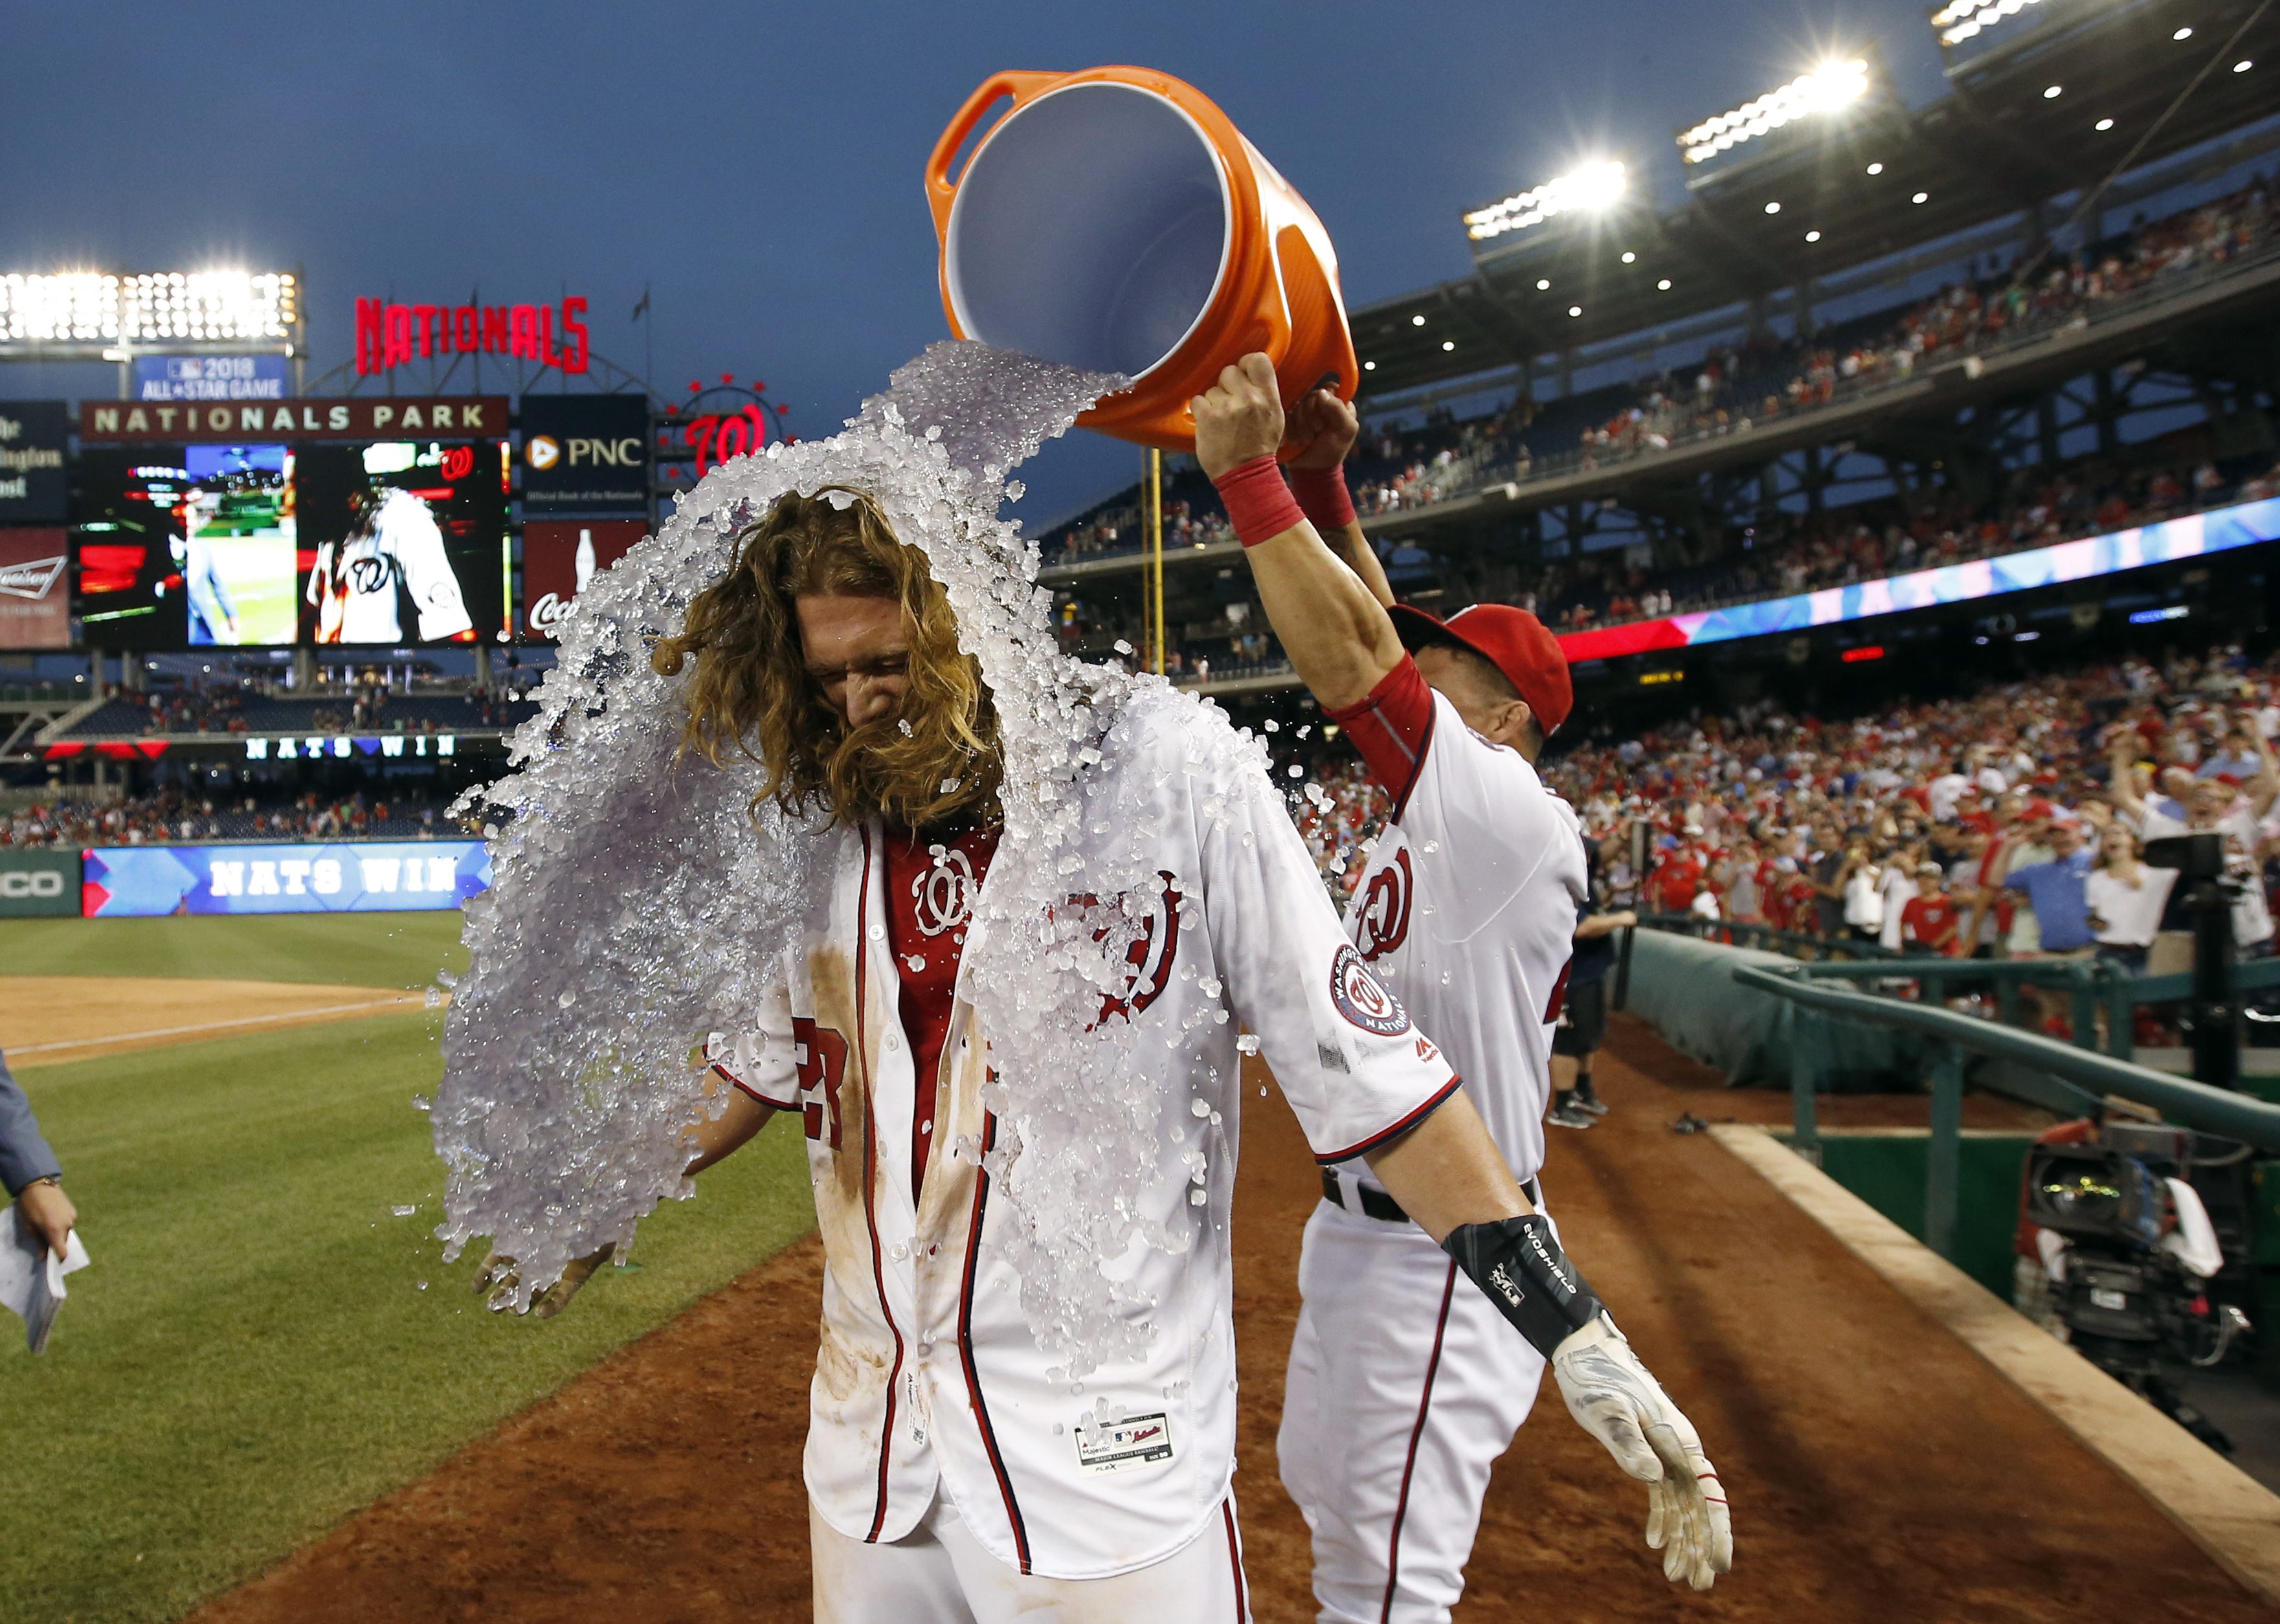 Washington Nationals' Jayson Werth gets doused by Wilson Ramos after a baseball game against the Chicago Cubs at Nationals Park, Wednesday, June 15, 2016, in Washington. Werth hit the game-winning RBI single. The Nationals won 5-4, in 12 innings. (AP Phot